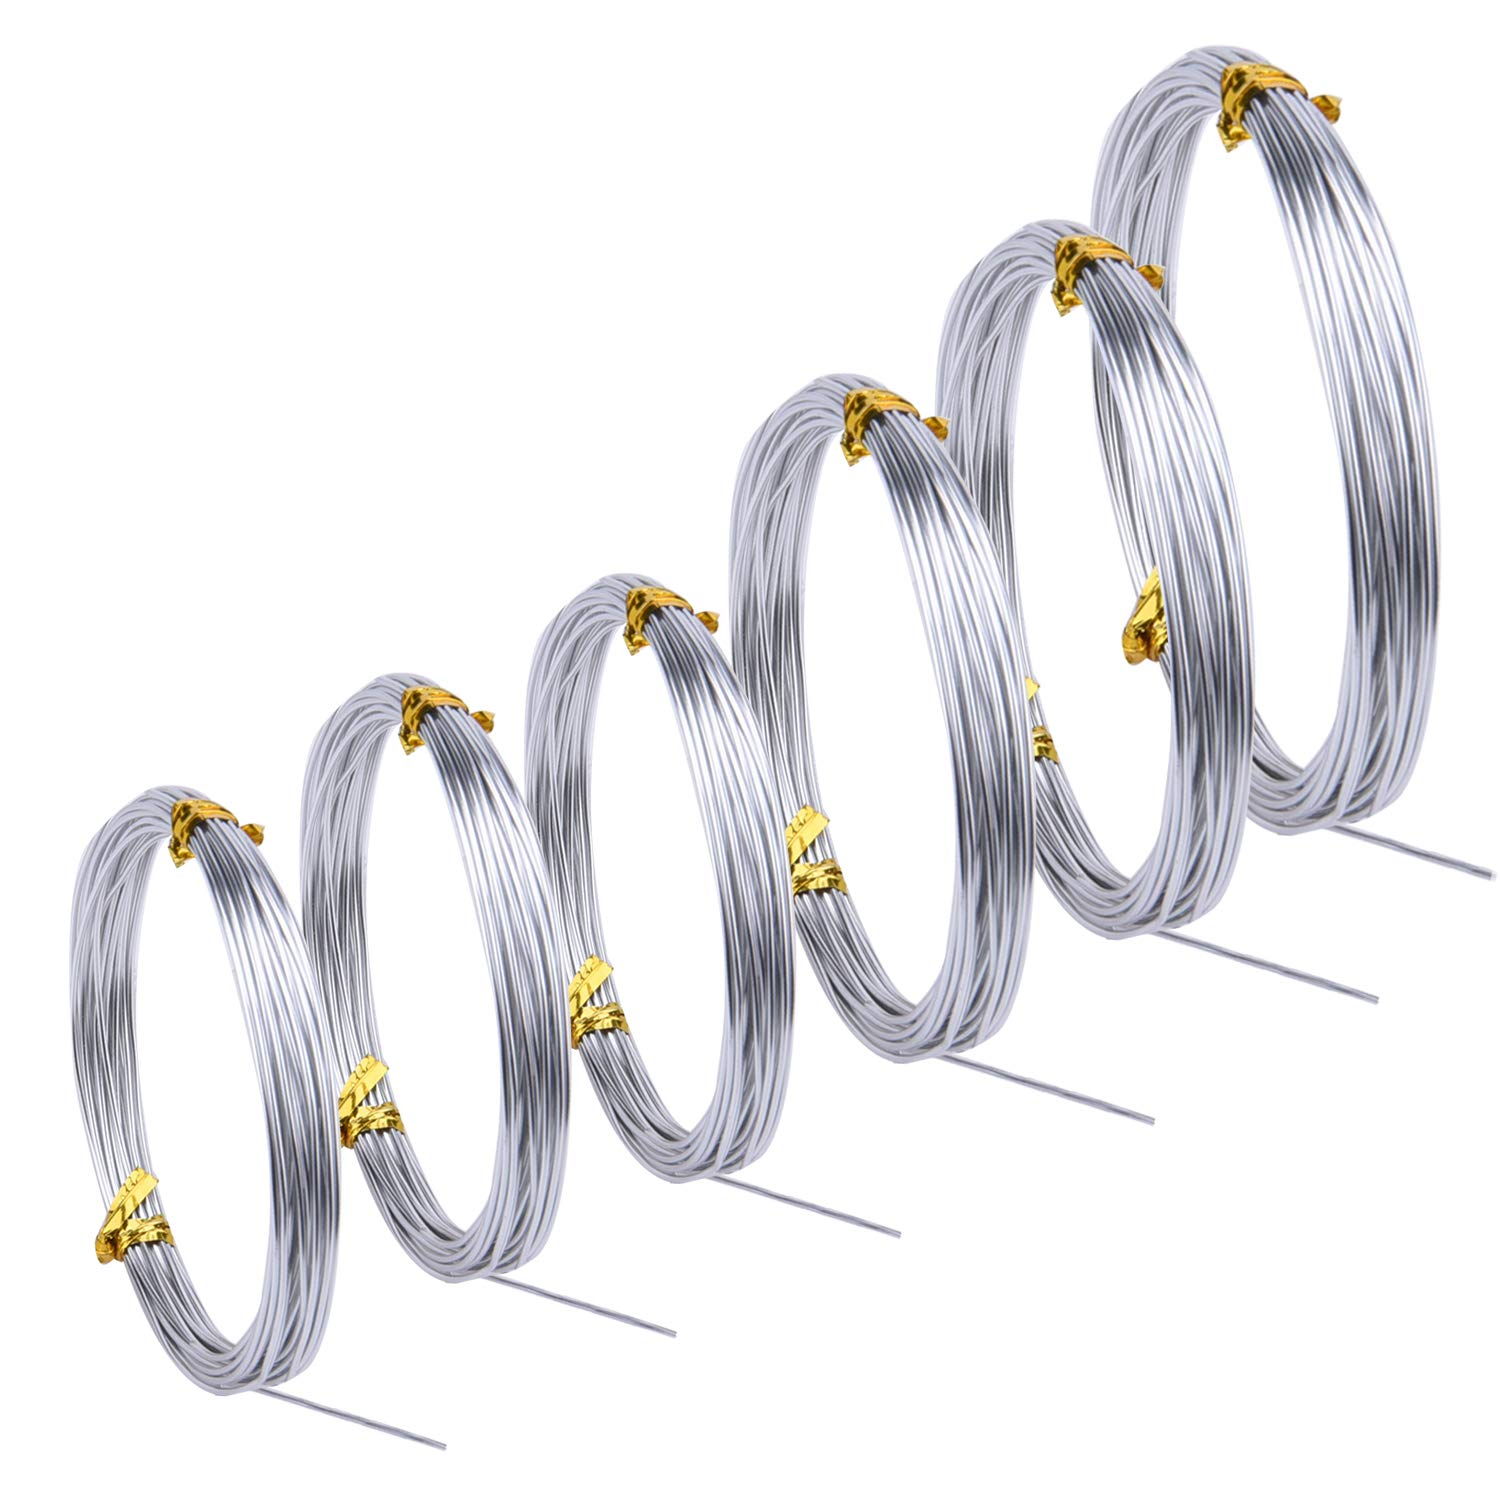 Sunmns 6 Rolls Silver Aluminum Wire, DIY Craft Art Wire, Soft and Flexible Metal Iron Wire, 1mm, 1.5mm, 2mm, 3mm in Thickness SunmnDirect